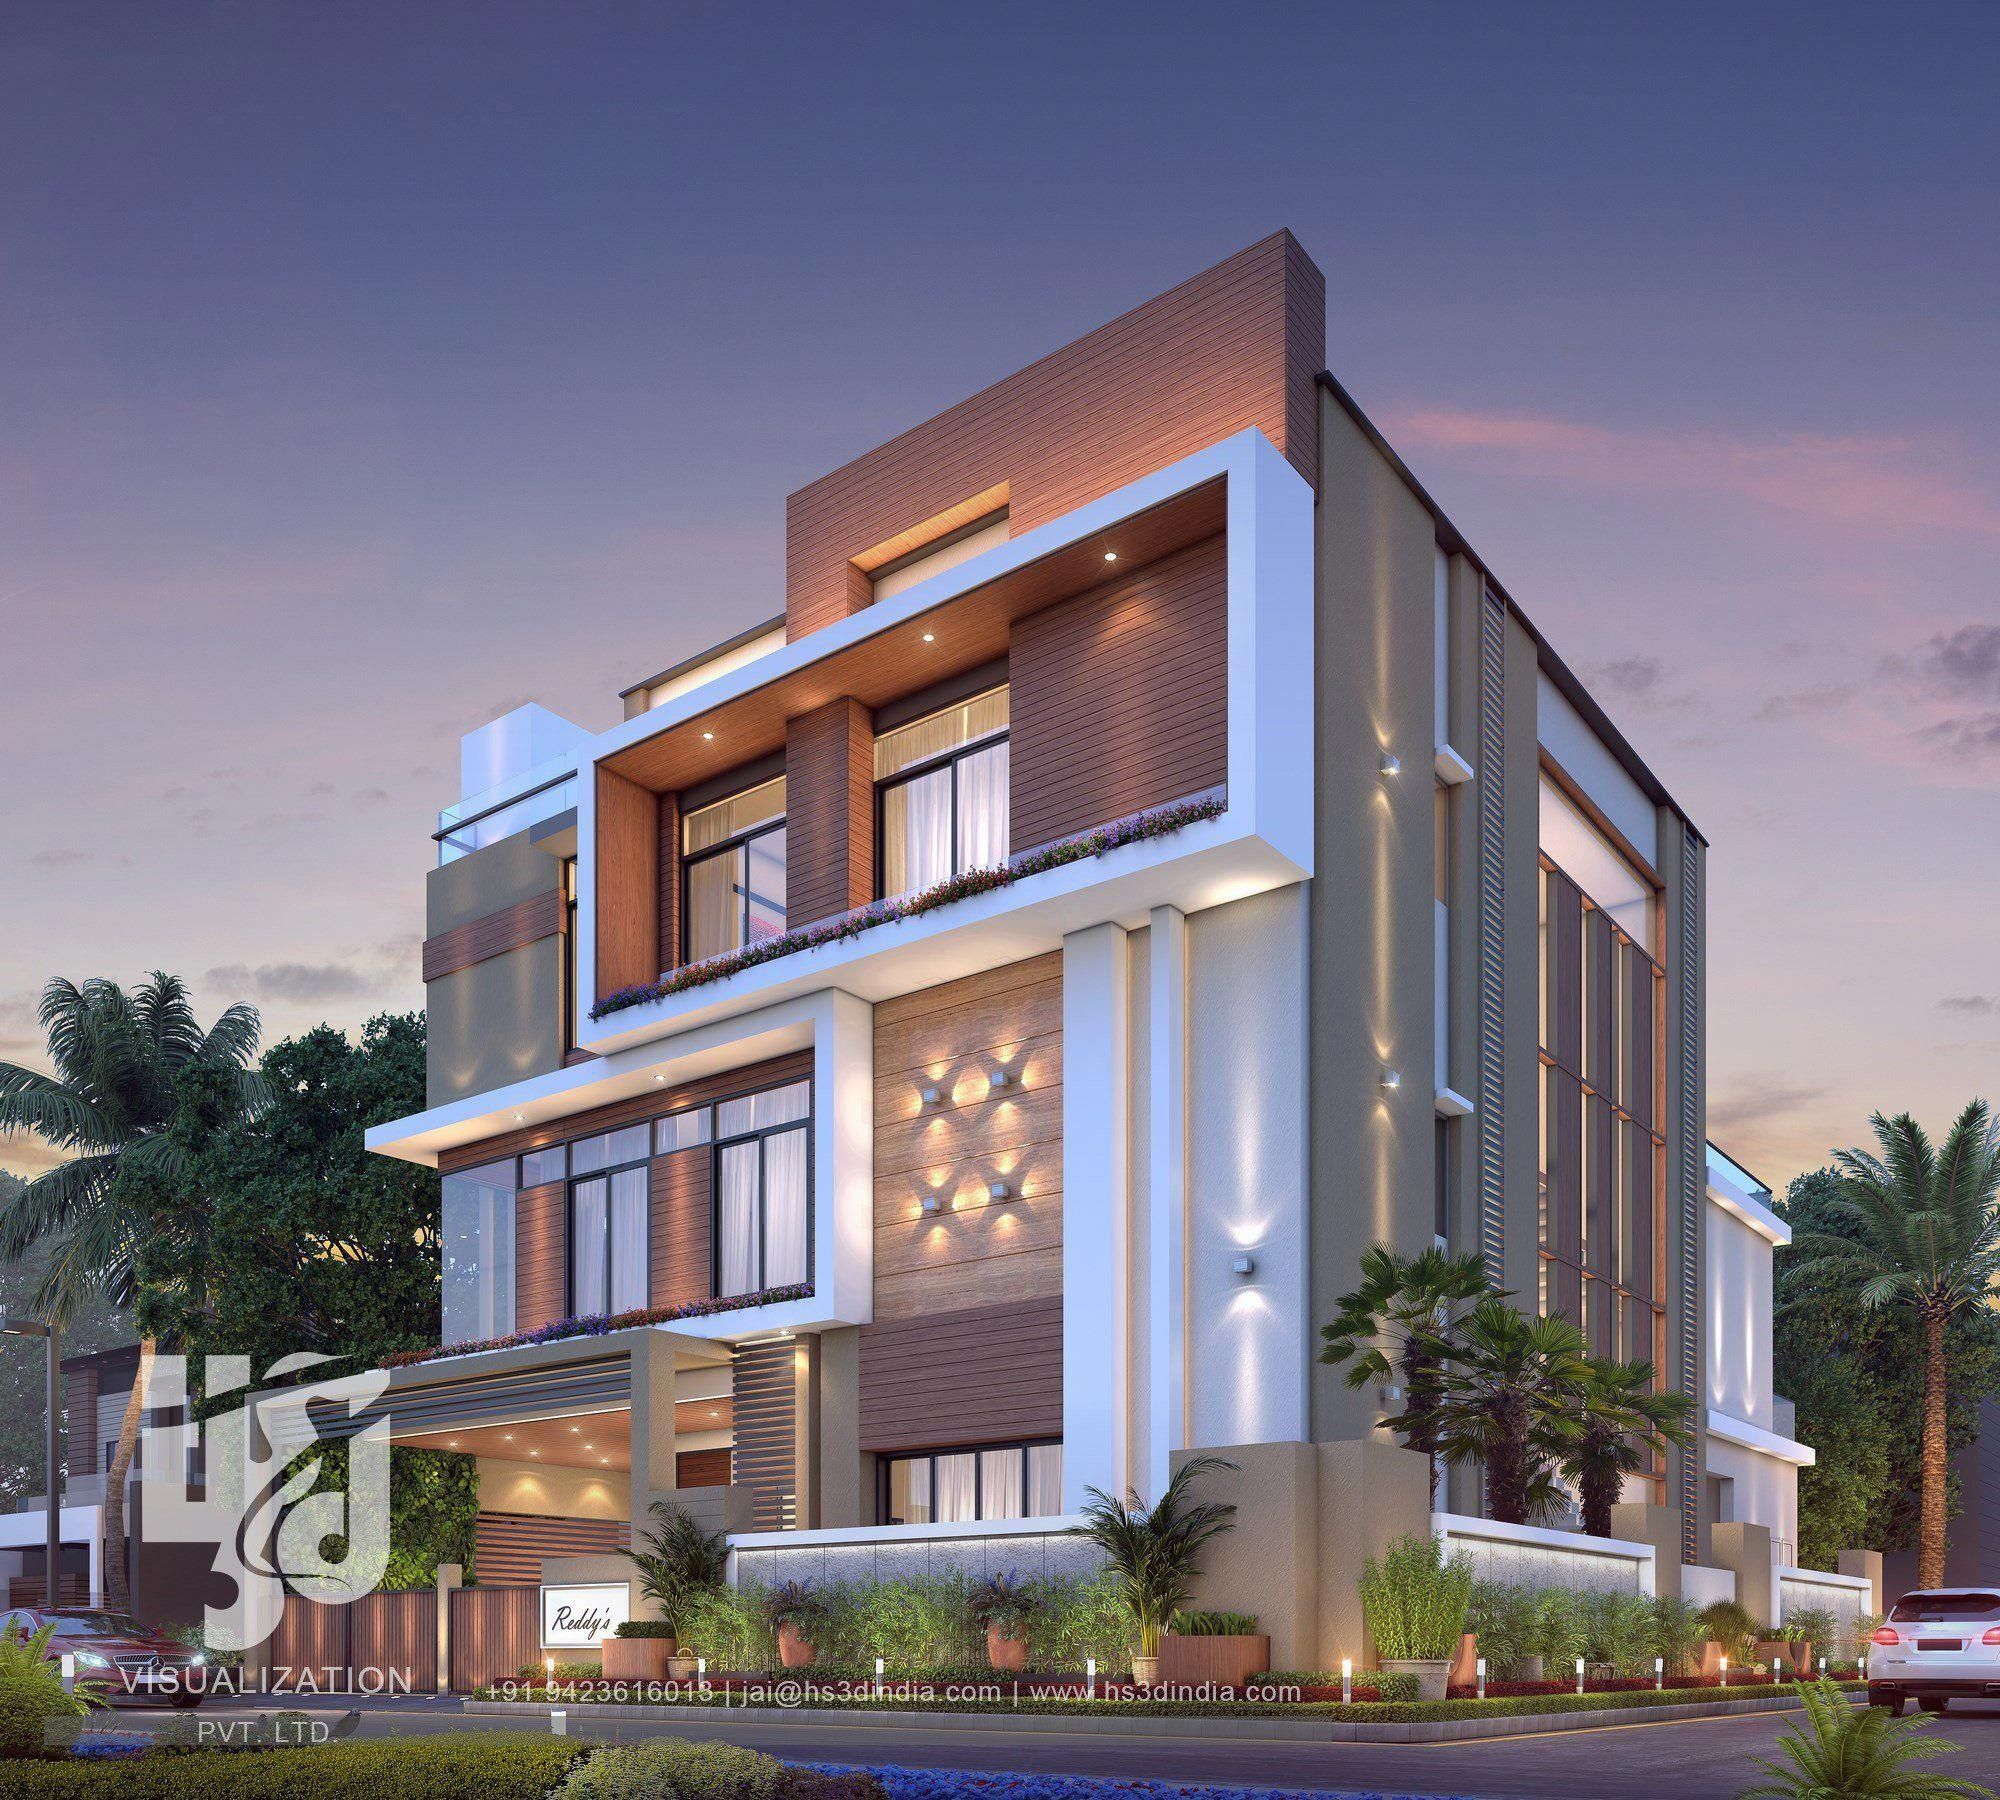 Modern Home Elevation Design: #IsInteriorDesignInHighDemand Code: 6663111789